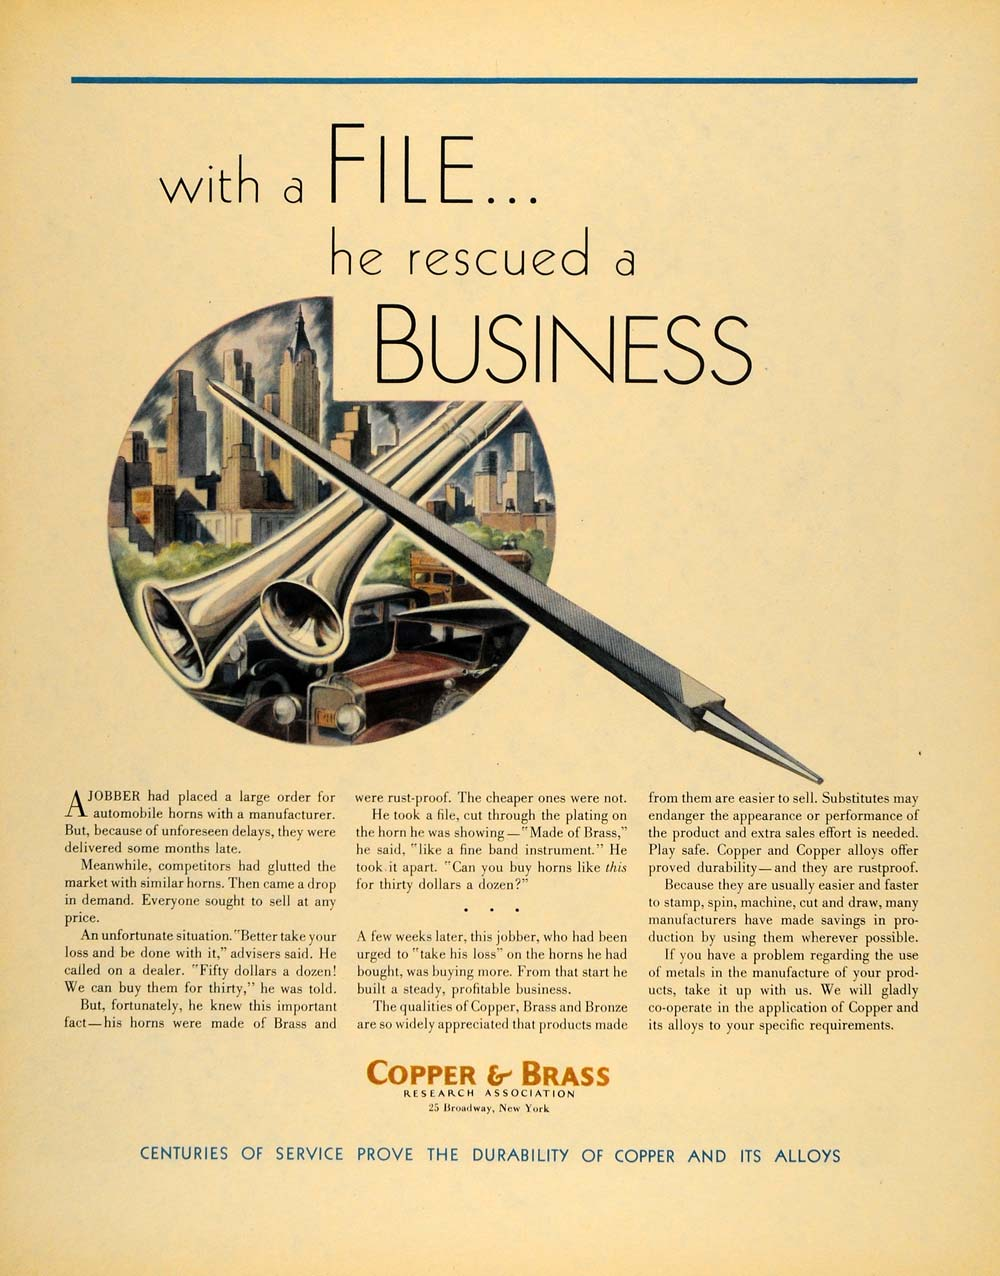 1931 Ad Copper & Brass Alloys 25 Broadway New York - ORIGINAL ADVERTISING F1A